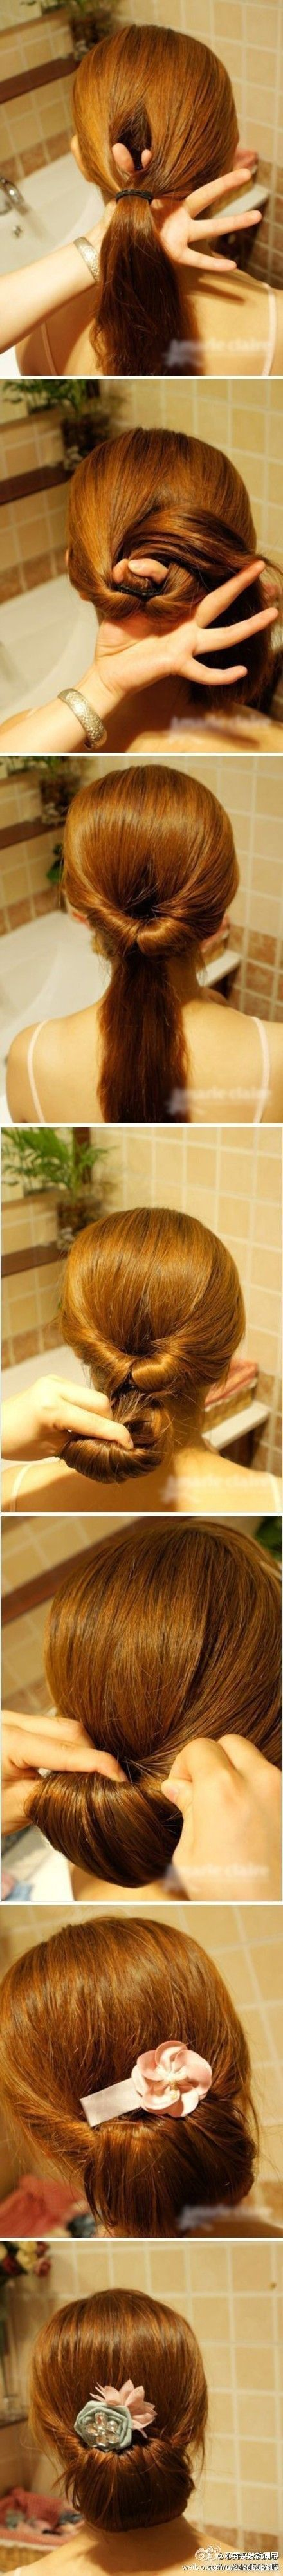 All interesting...: office hair style